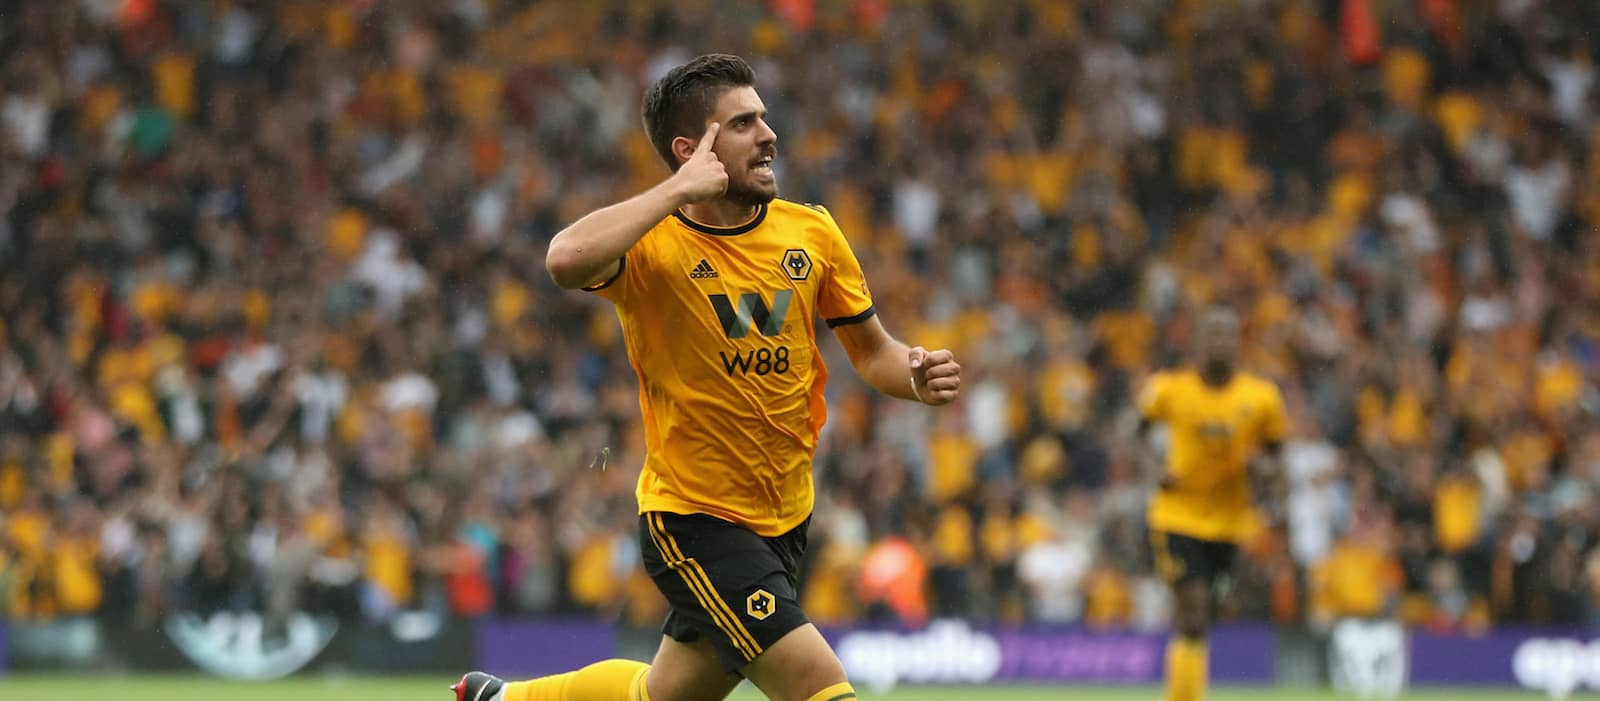 Manchester United ignite interest in Manchester City target Ruben Neves: report